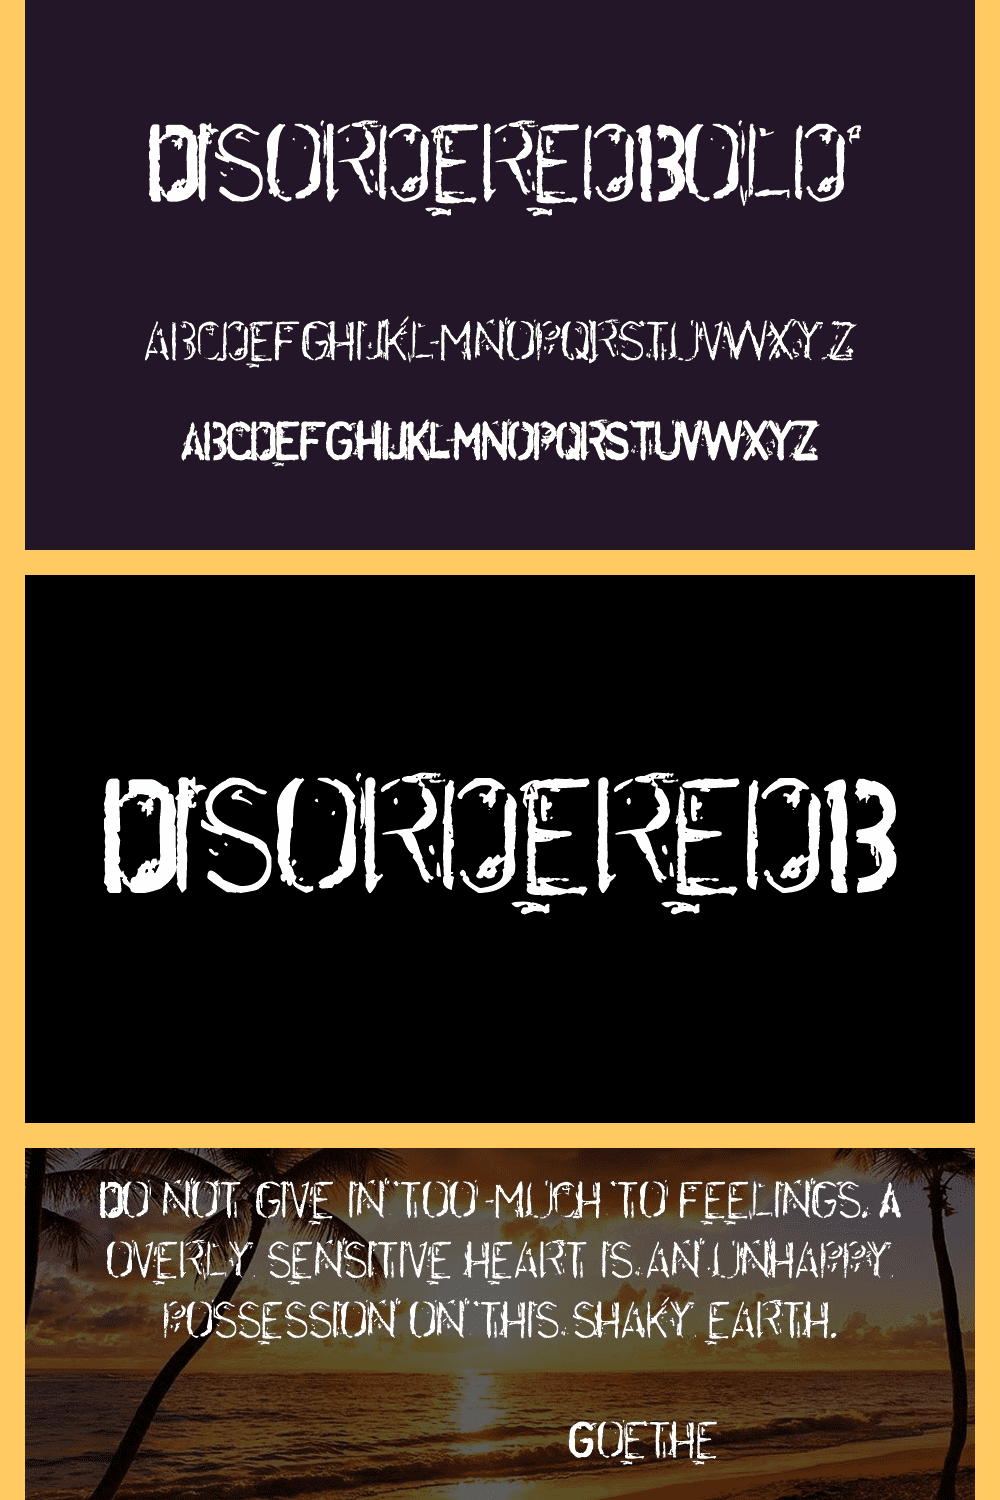 Disordered bold font.